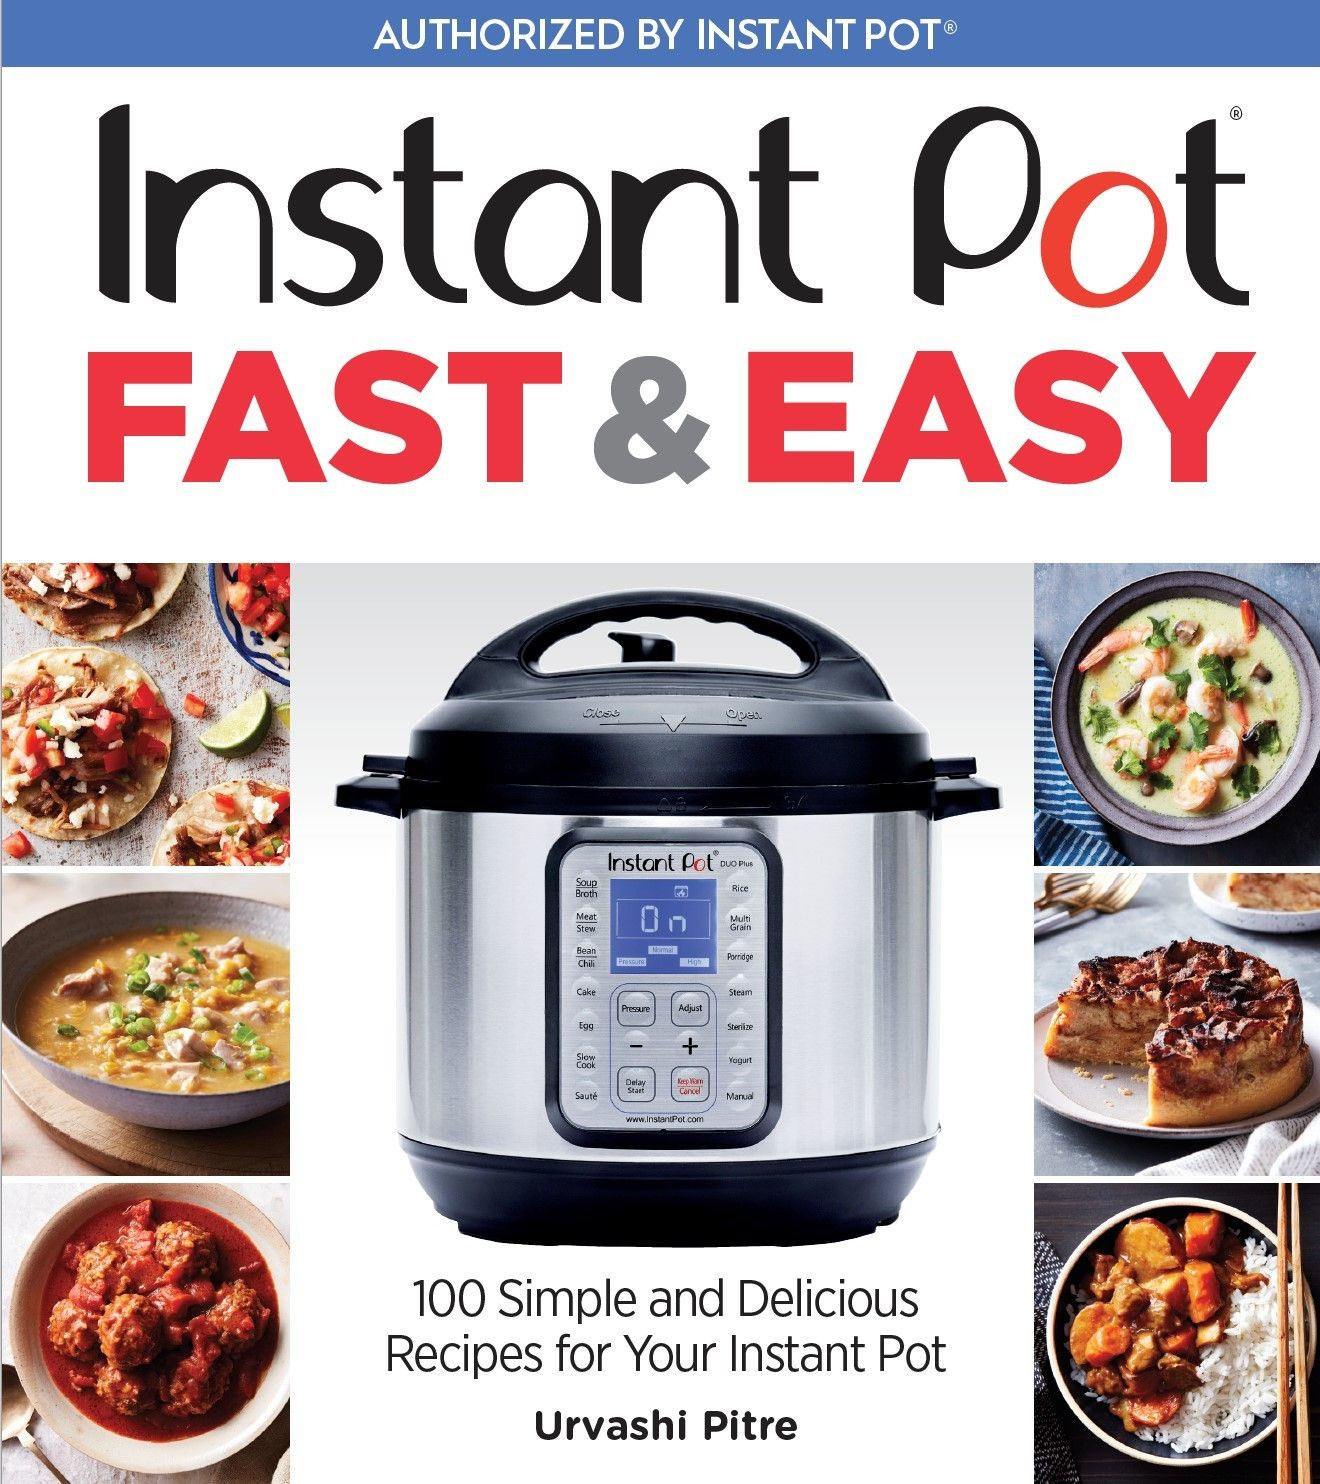 9 Indian Instant Pot Recipes for Rich, Comforting Flavor Fast